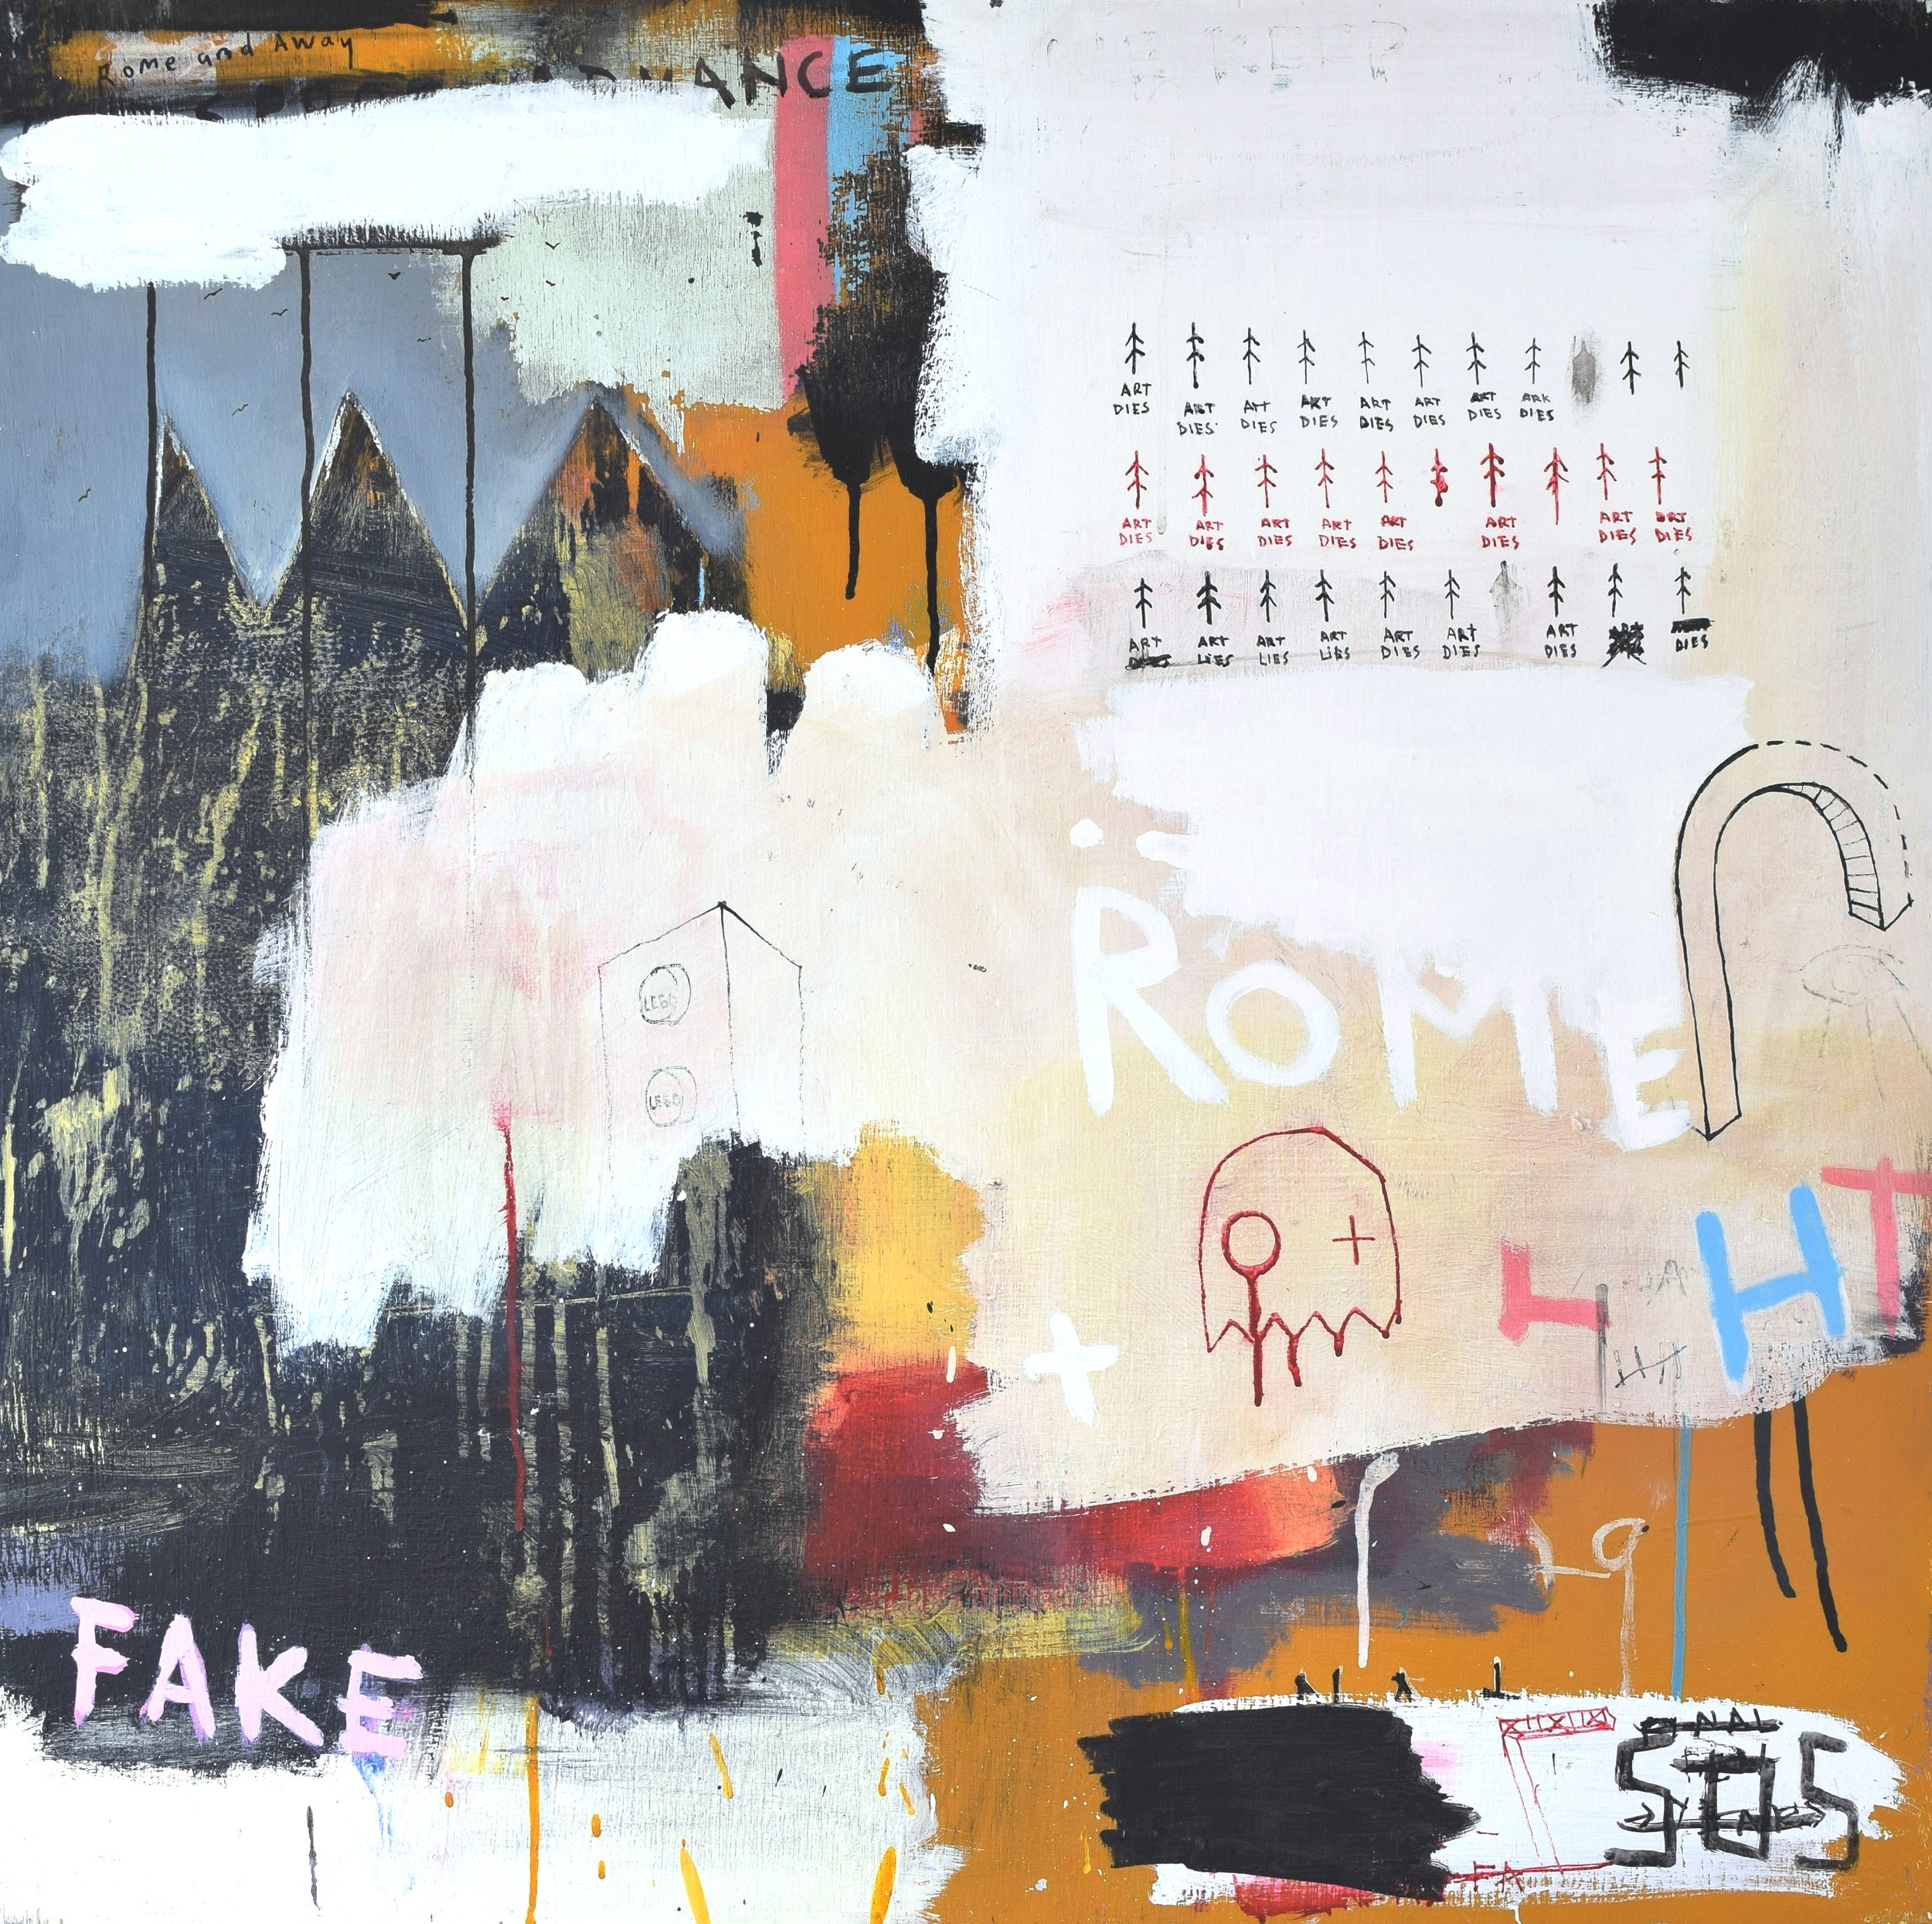 'ROME AND AWAY' 2014    Spray paint and acrylic paint on wood. 100 x 100 x 3.5 cm